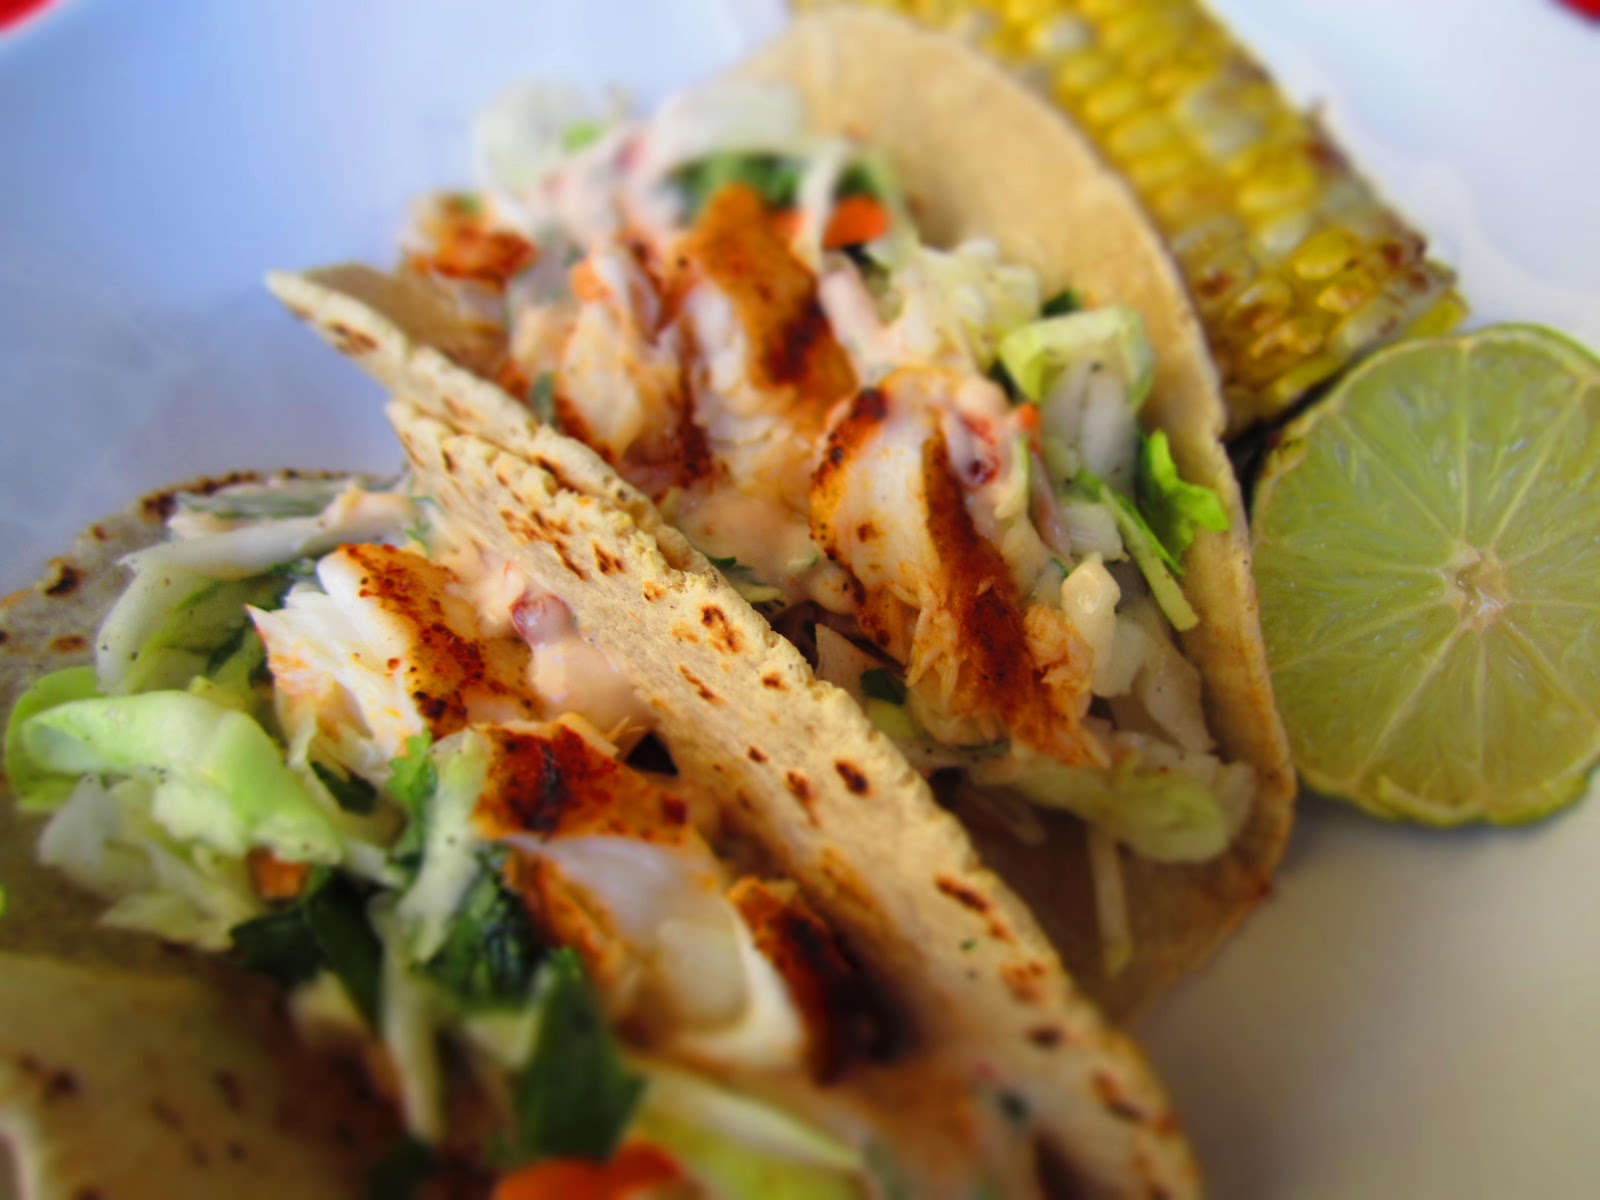 Grilled Fish Tacos - Bing images